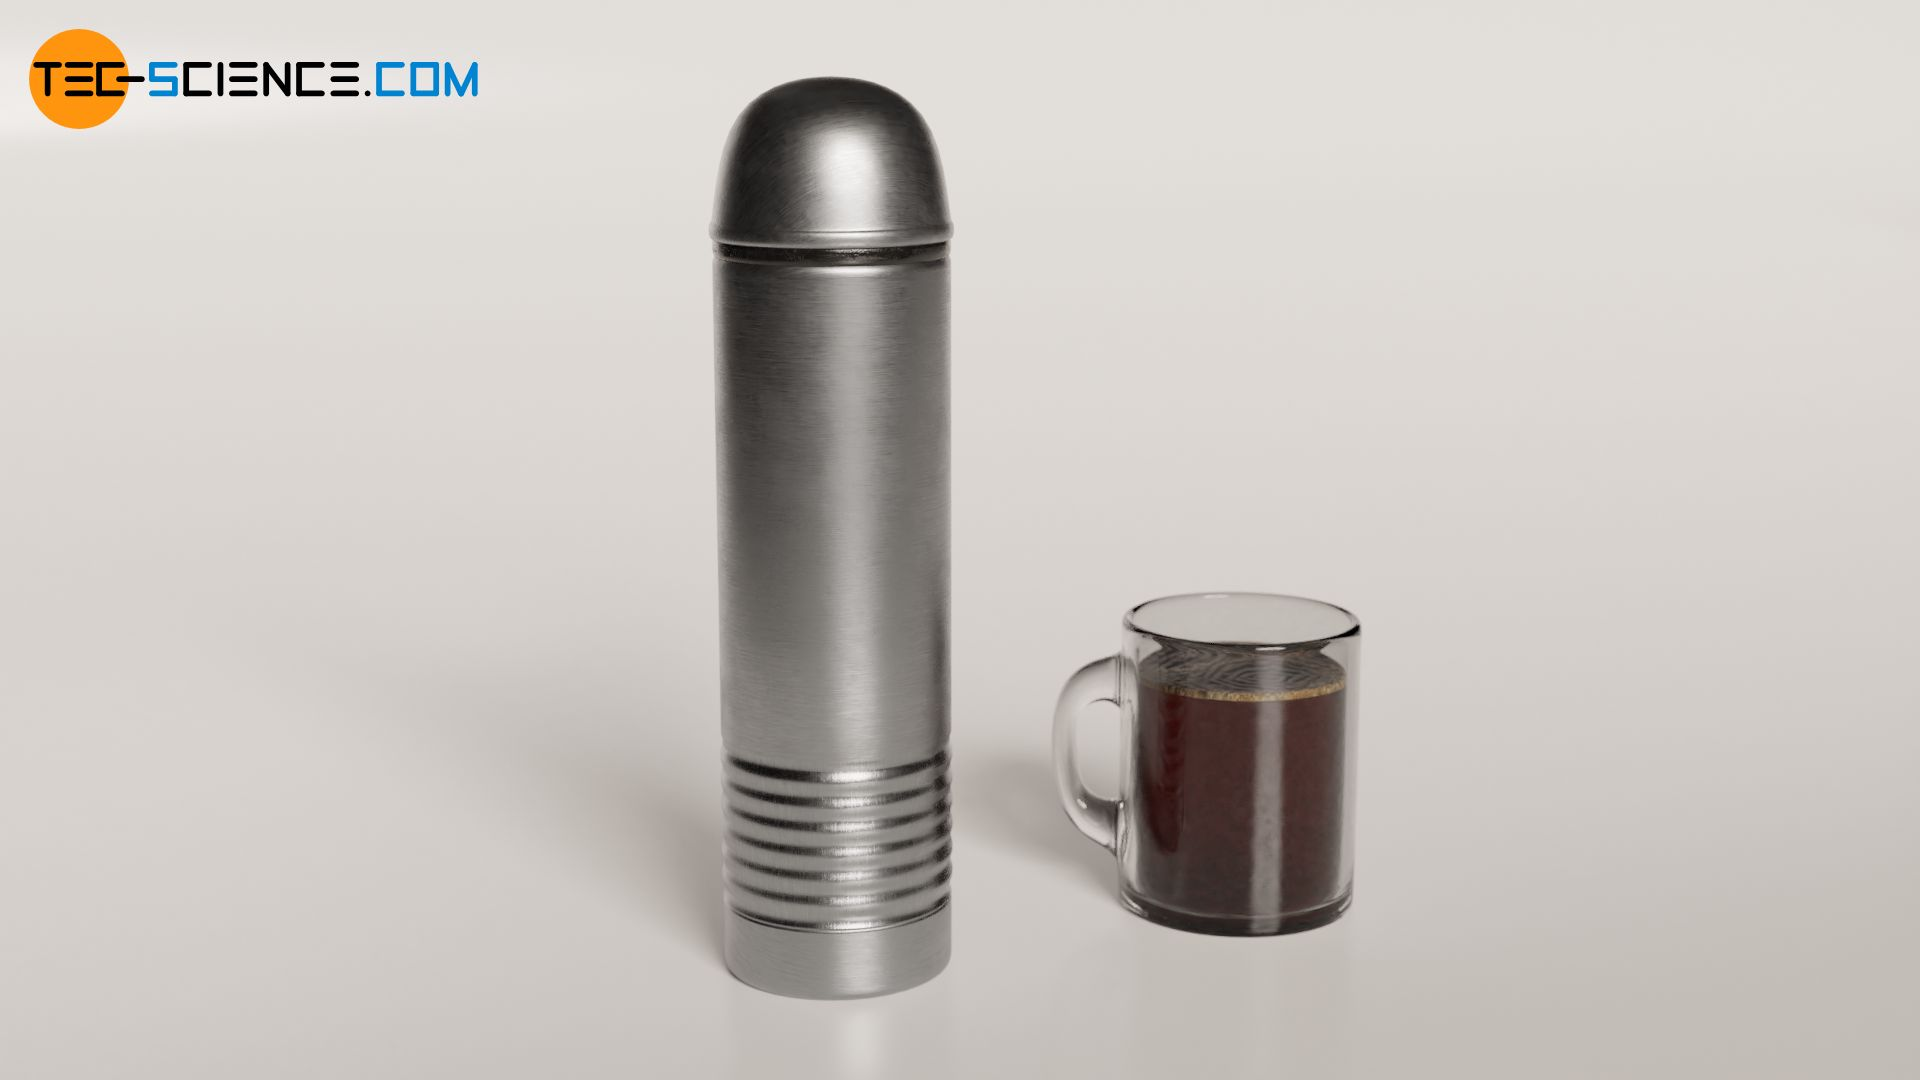 Thermos flask as an example of a isolated system